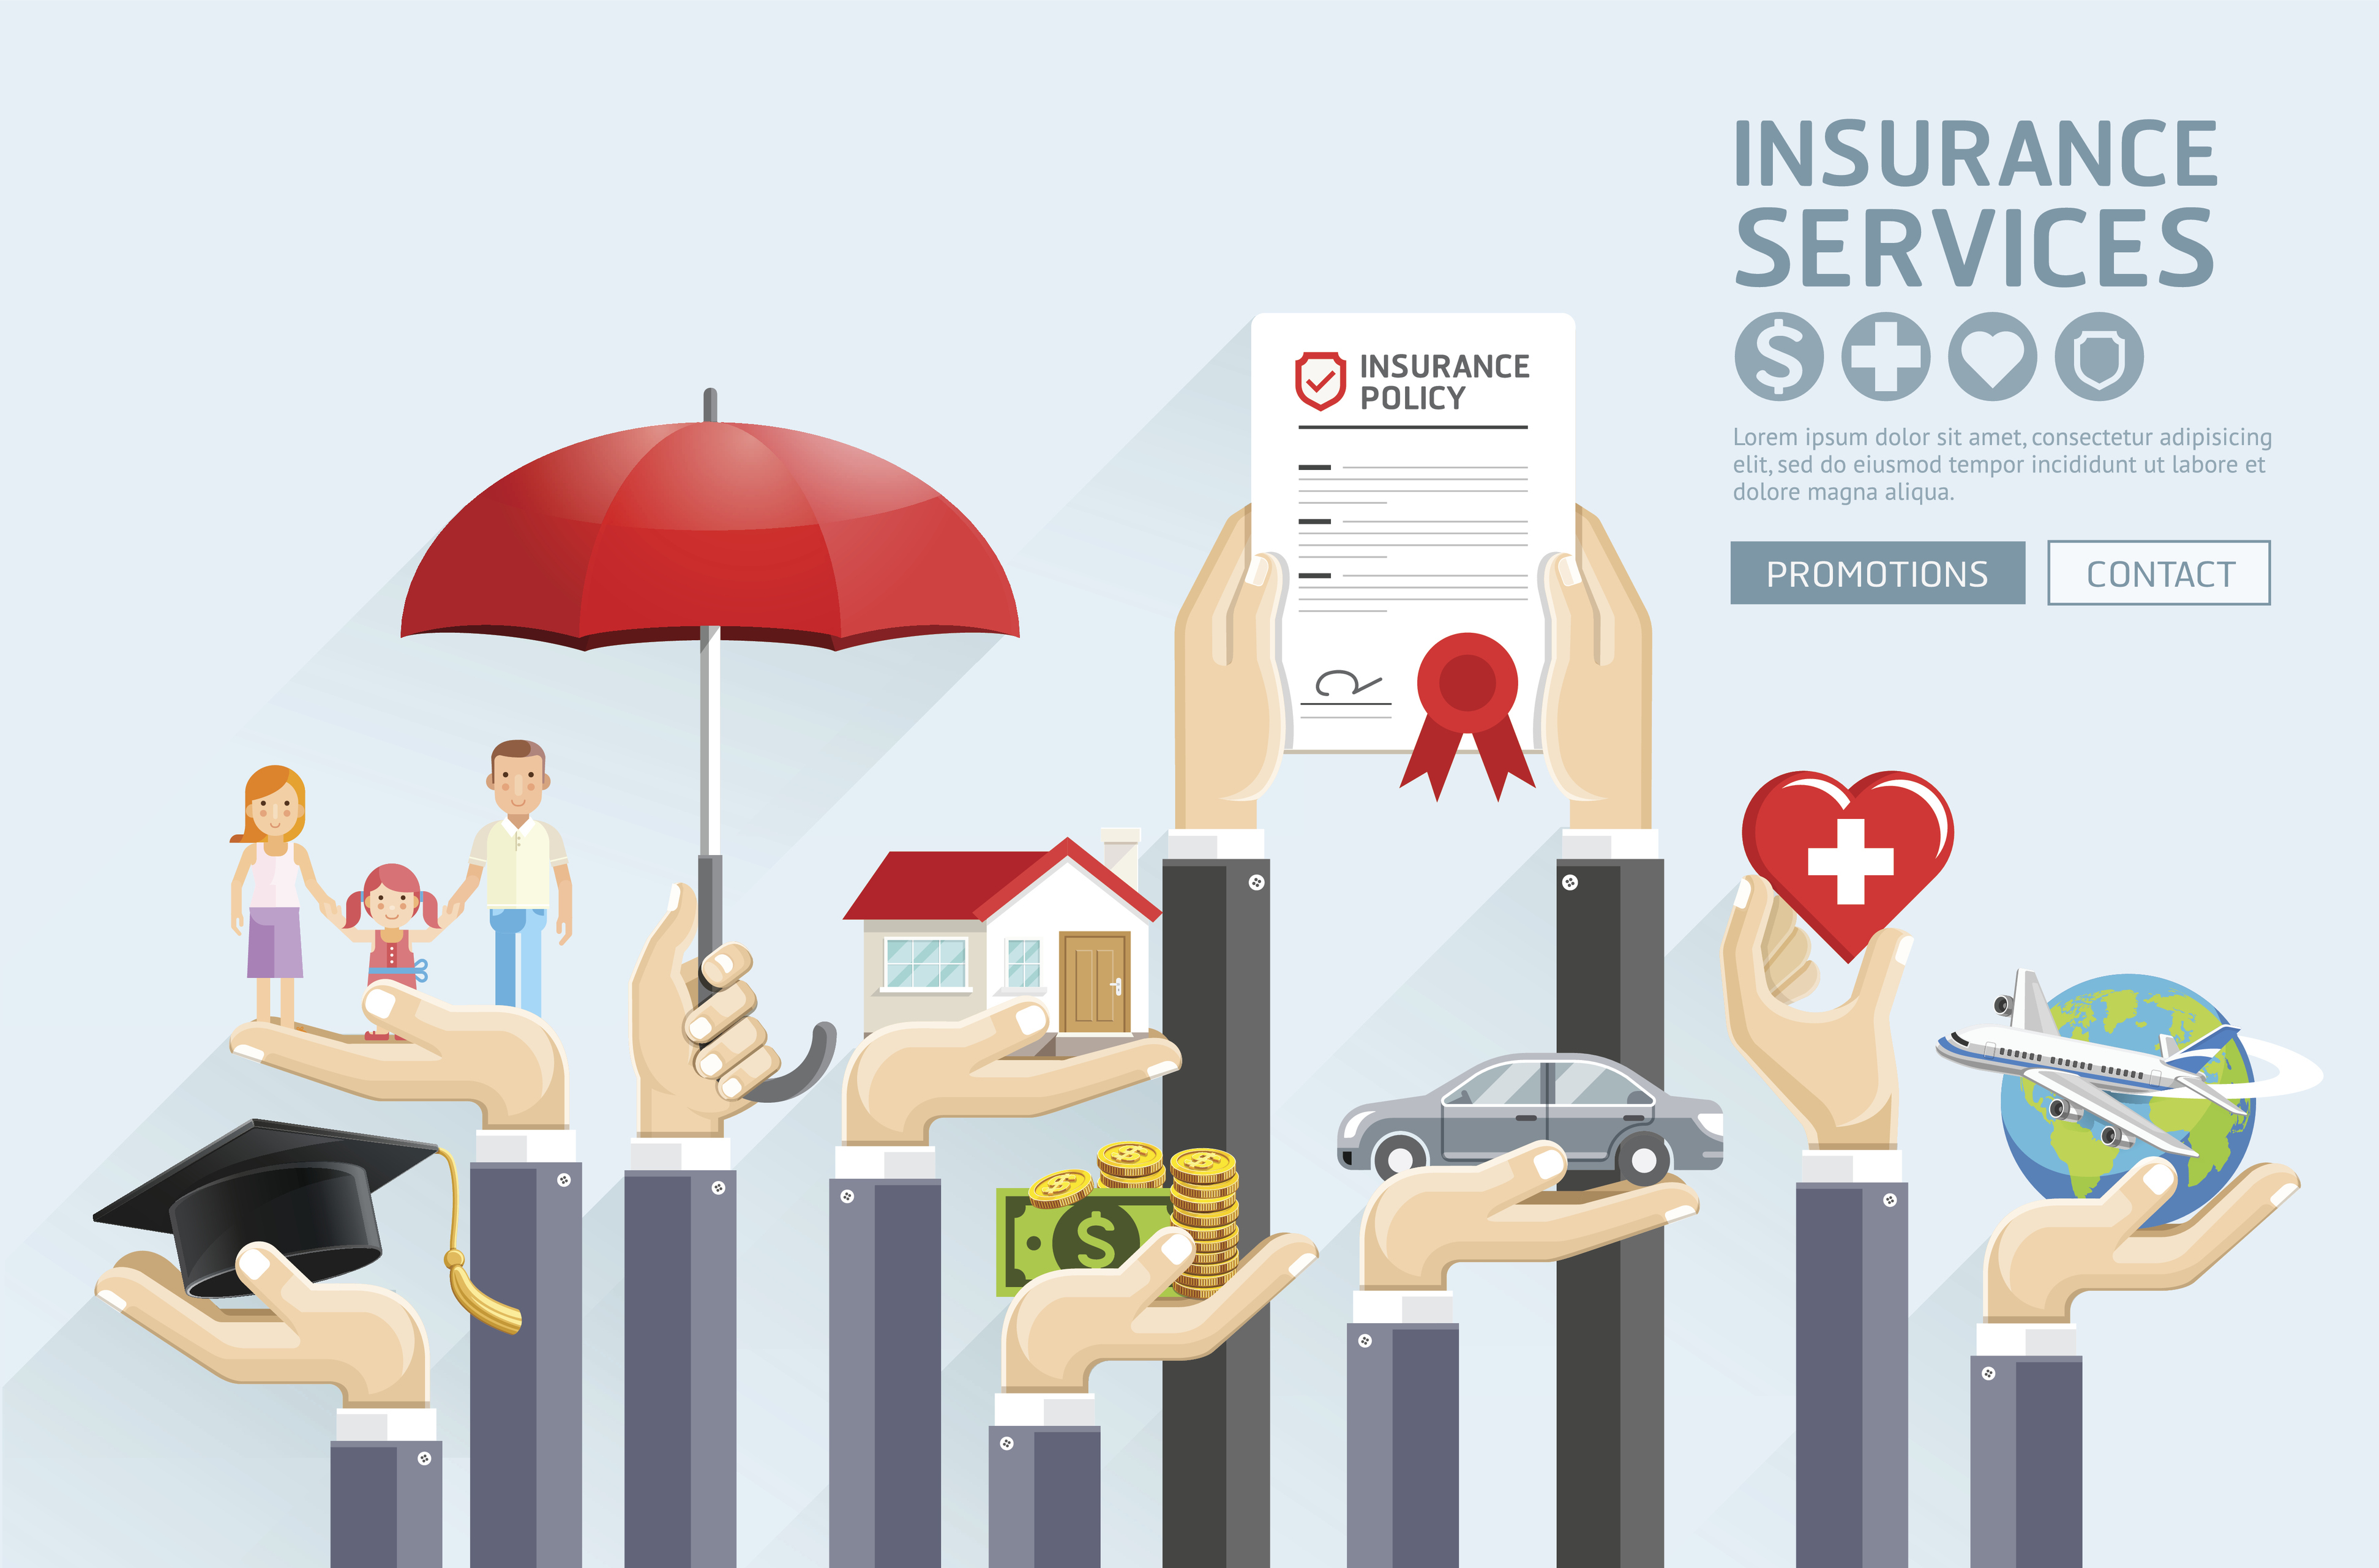 More is More: Why Insurance Companies Offer Discounts on Multiple Policies, Despite Taking on More Risk on avanteinsurance.com